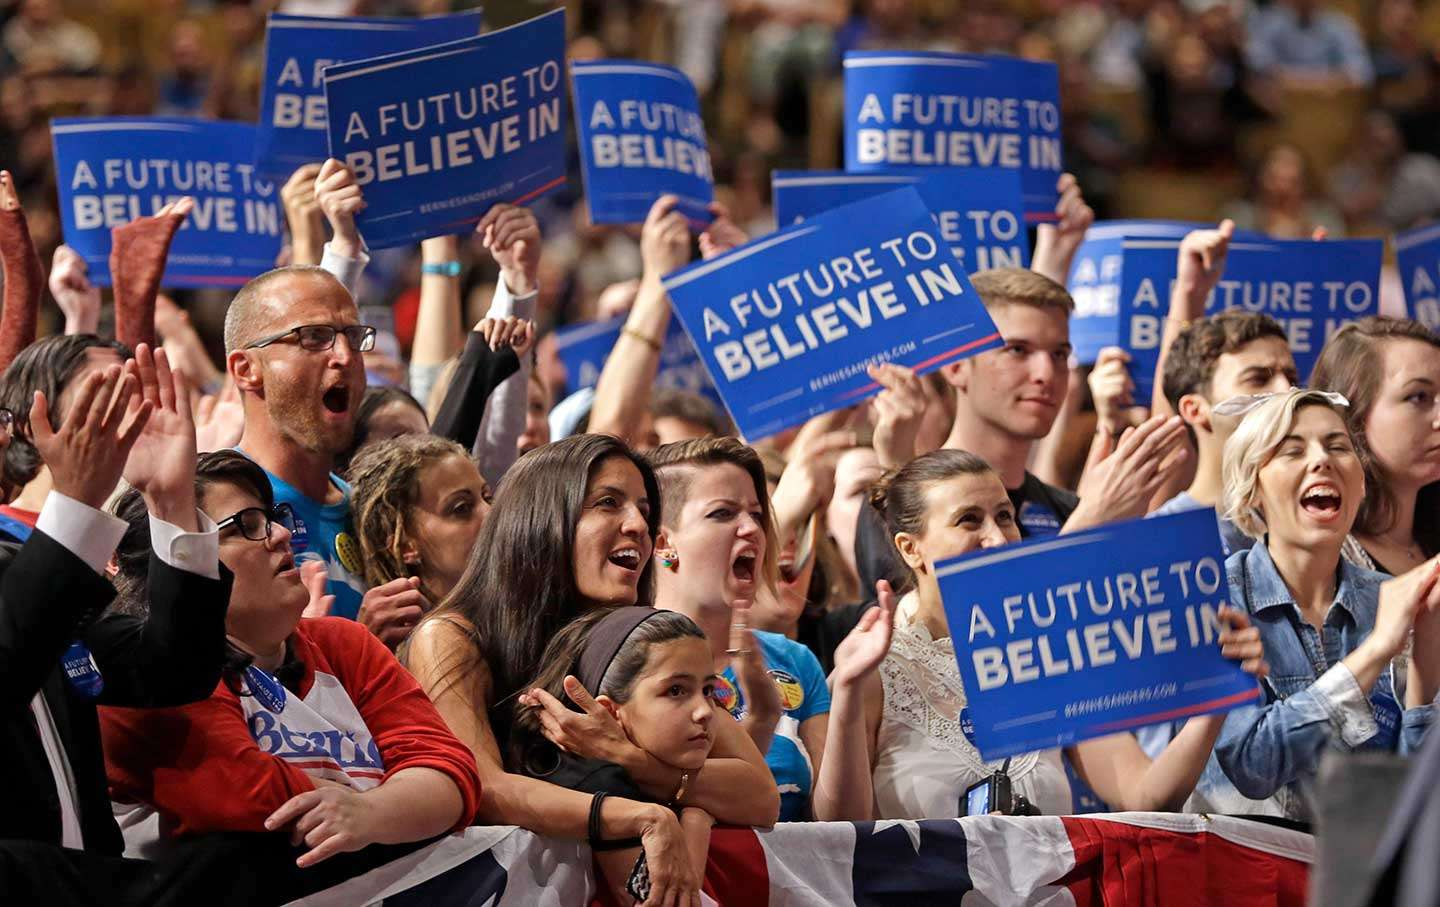 Are There Still Chances for Sanders? The Things That the Media in the USA Does Not Talk About